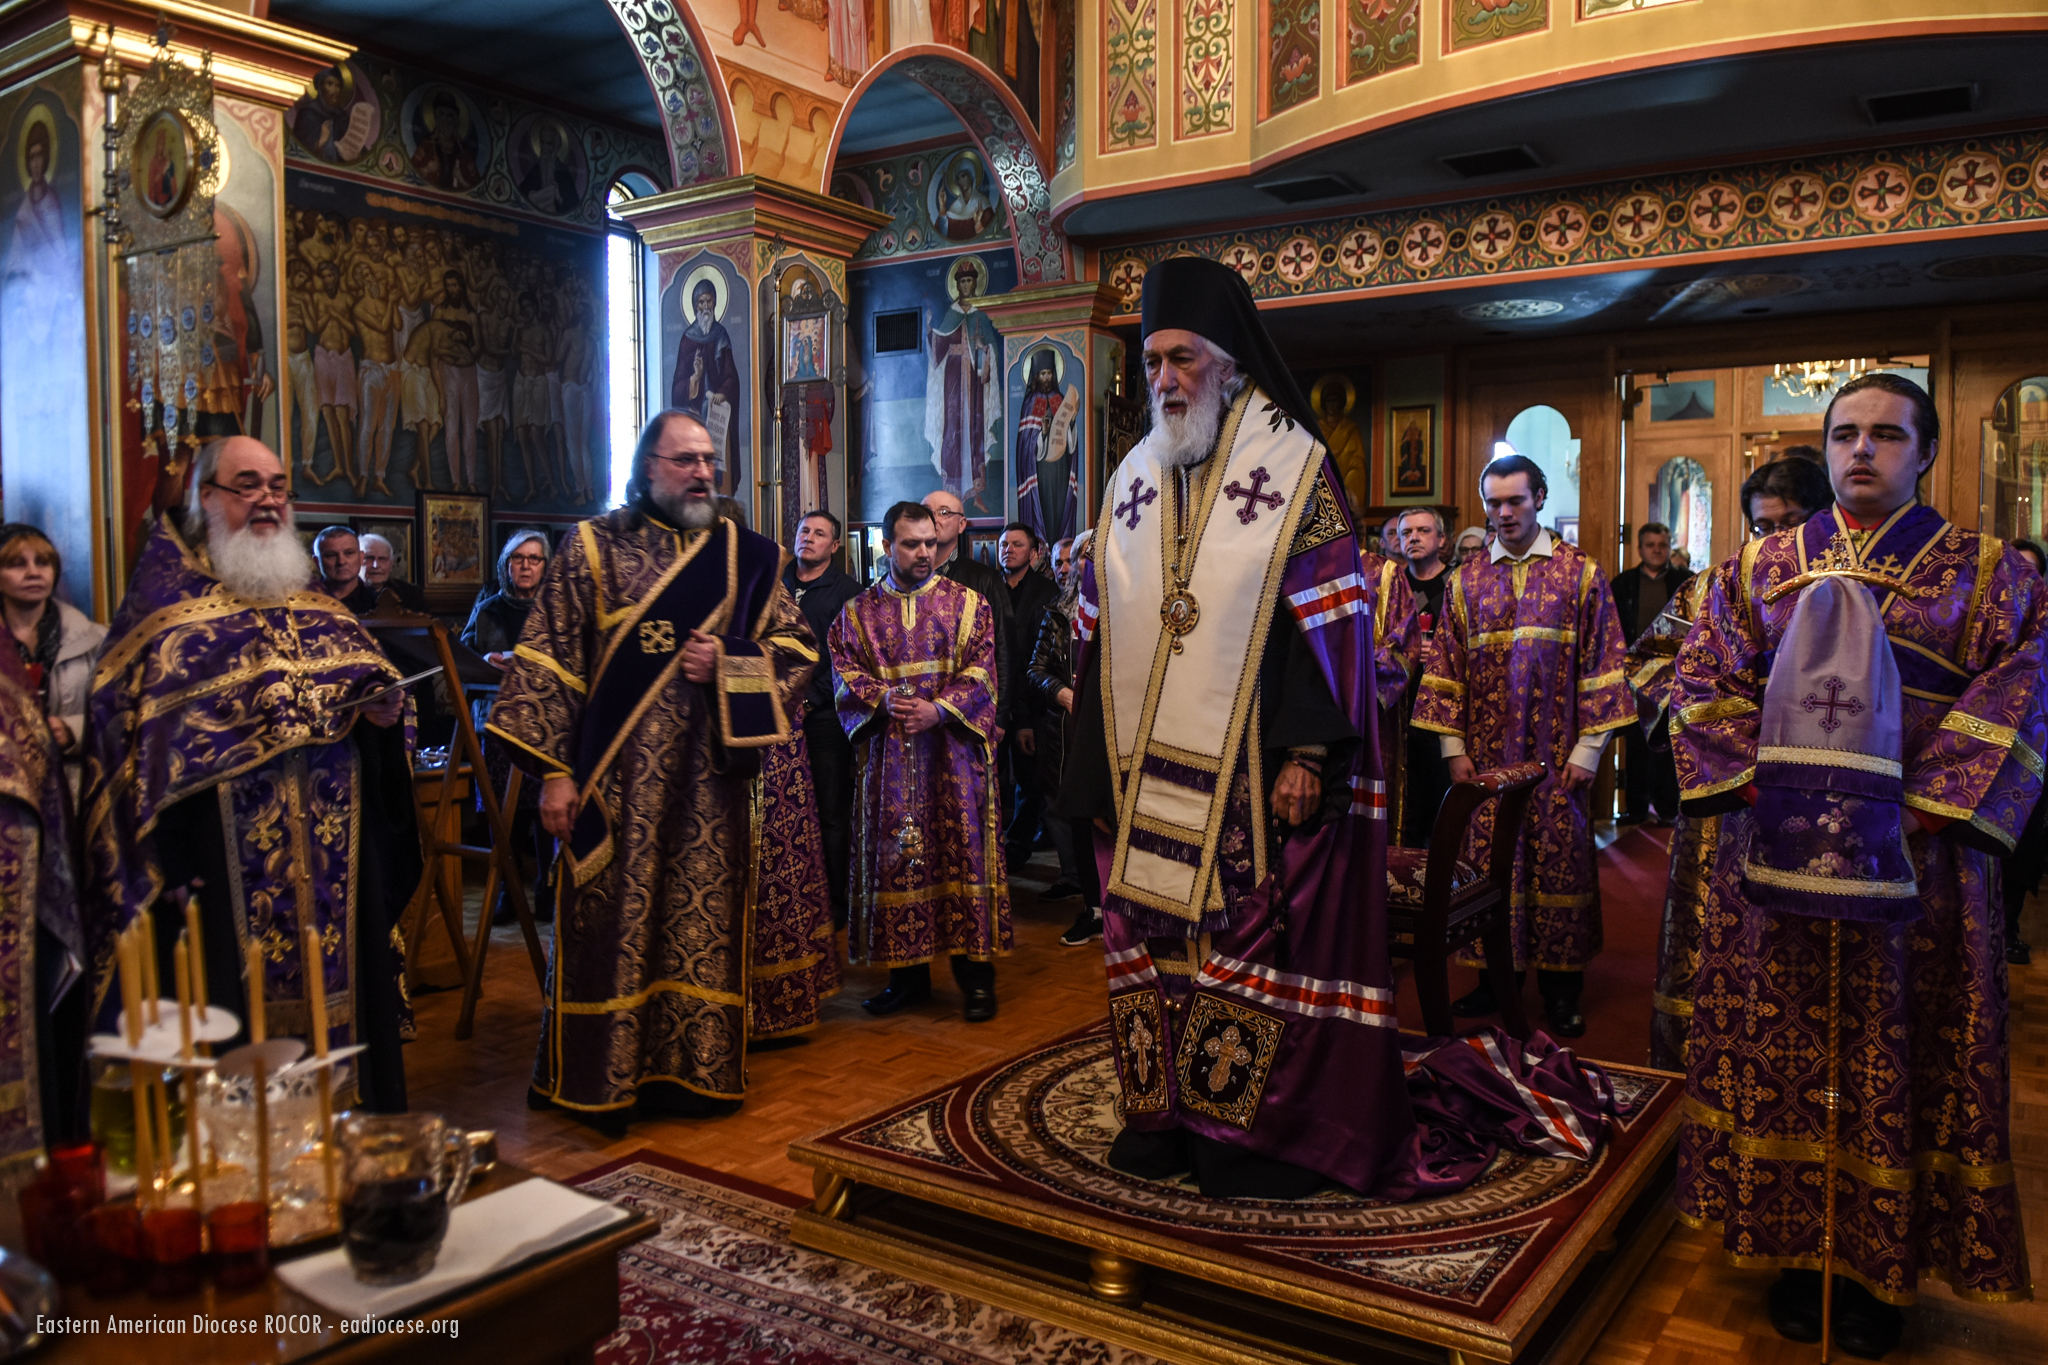 HOWELL, NJ: BISHOP NIKOLAI (SORAICH), SOFTENER OF EVIL HEARTS ICON VISIT ST. ALEXANDER NEVSKY DIOCESAN CATHEDRAL